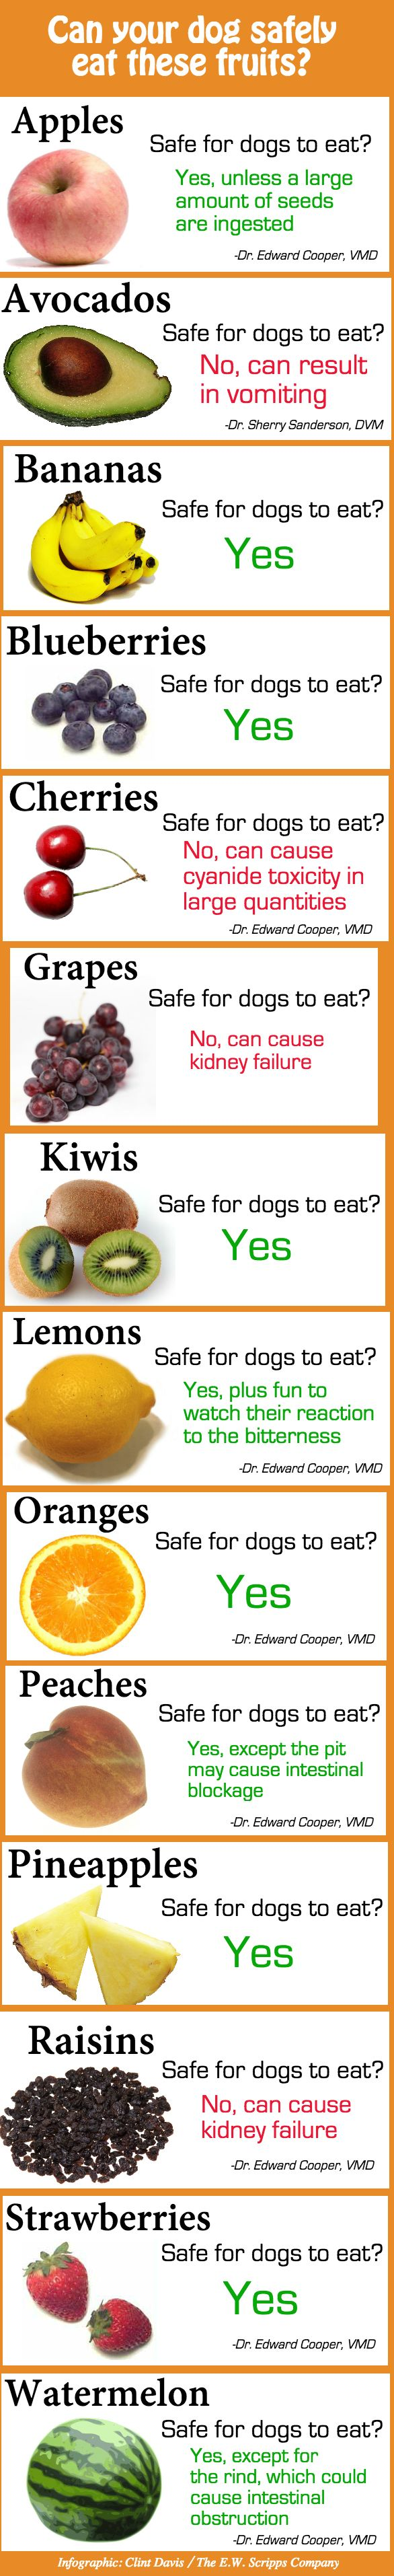 These are the fruits that are safe to share with your dog, as well as some that aren't so safe